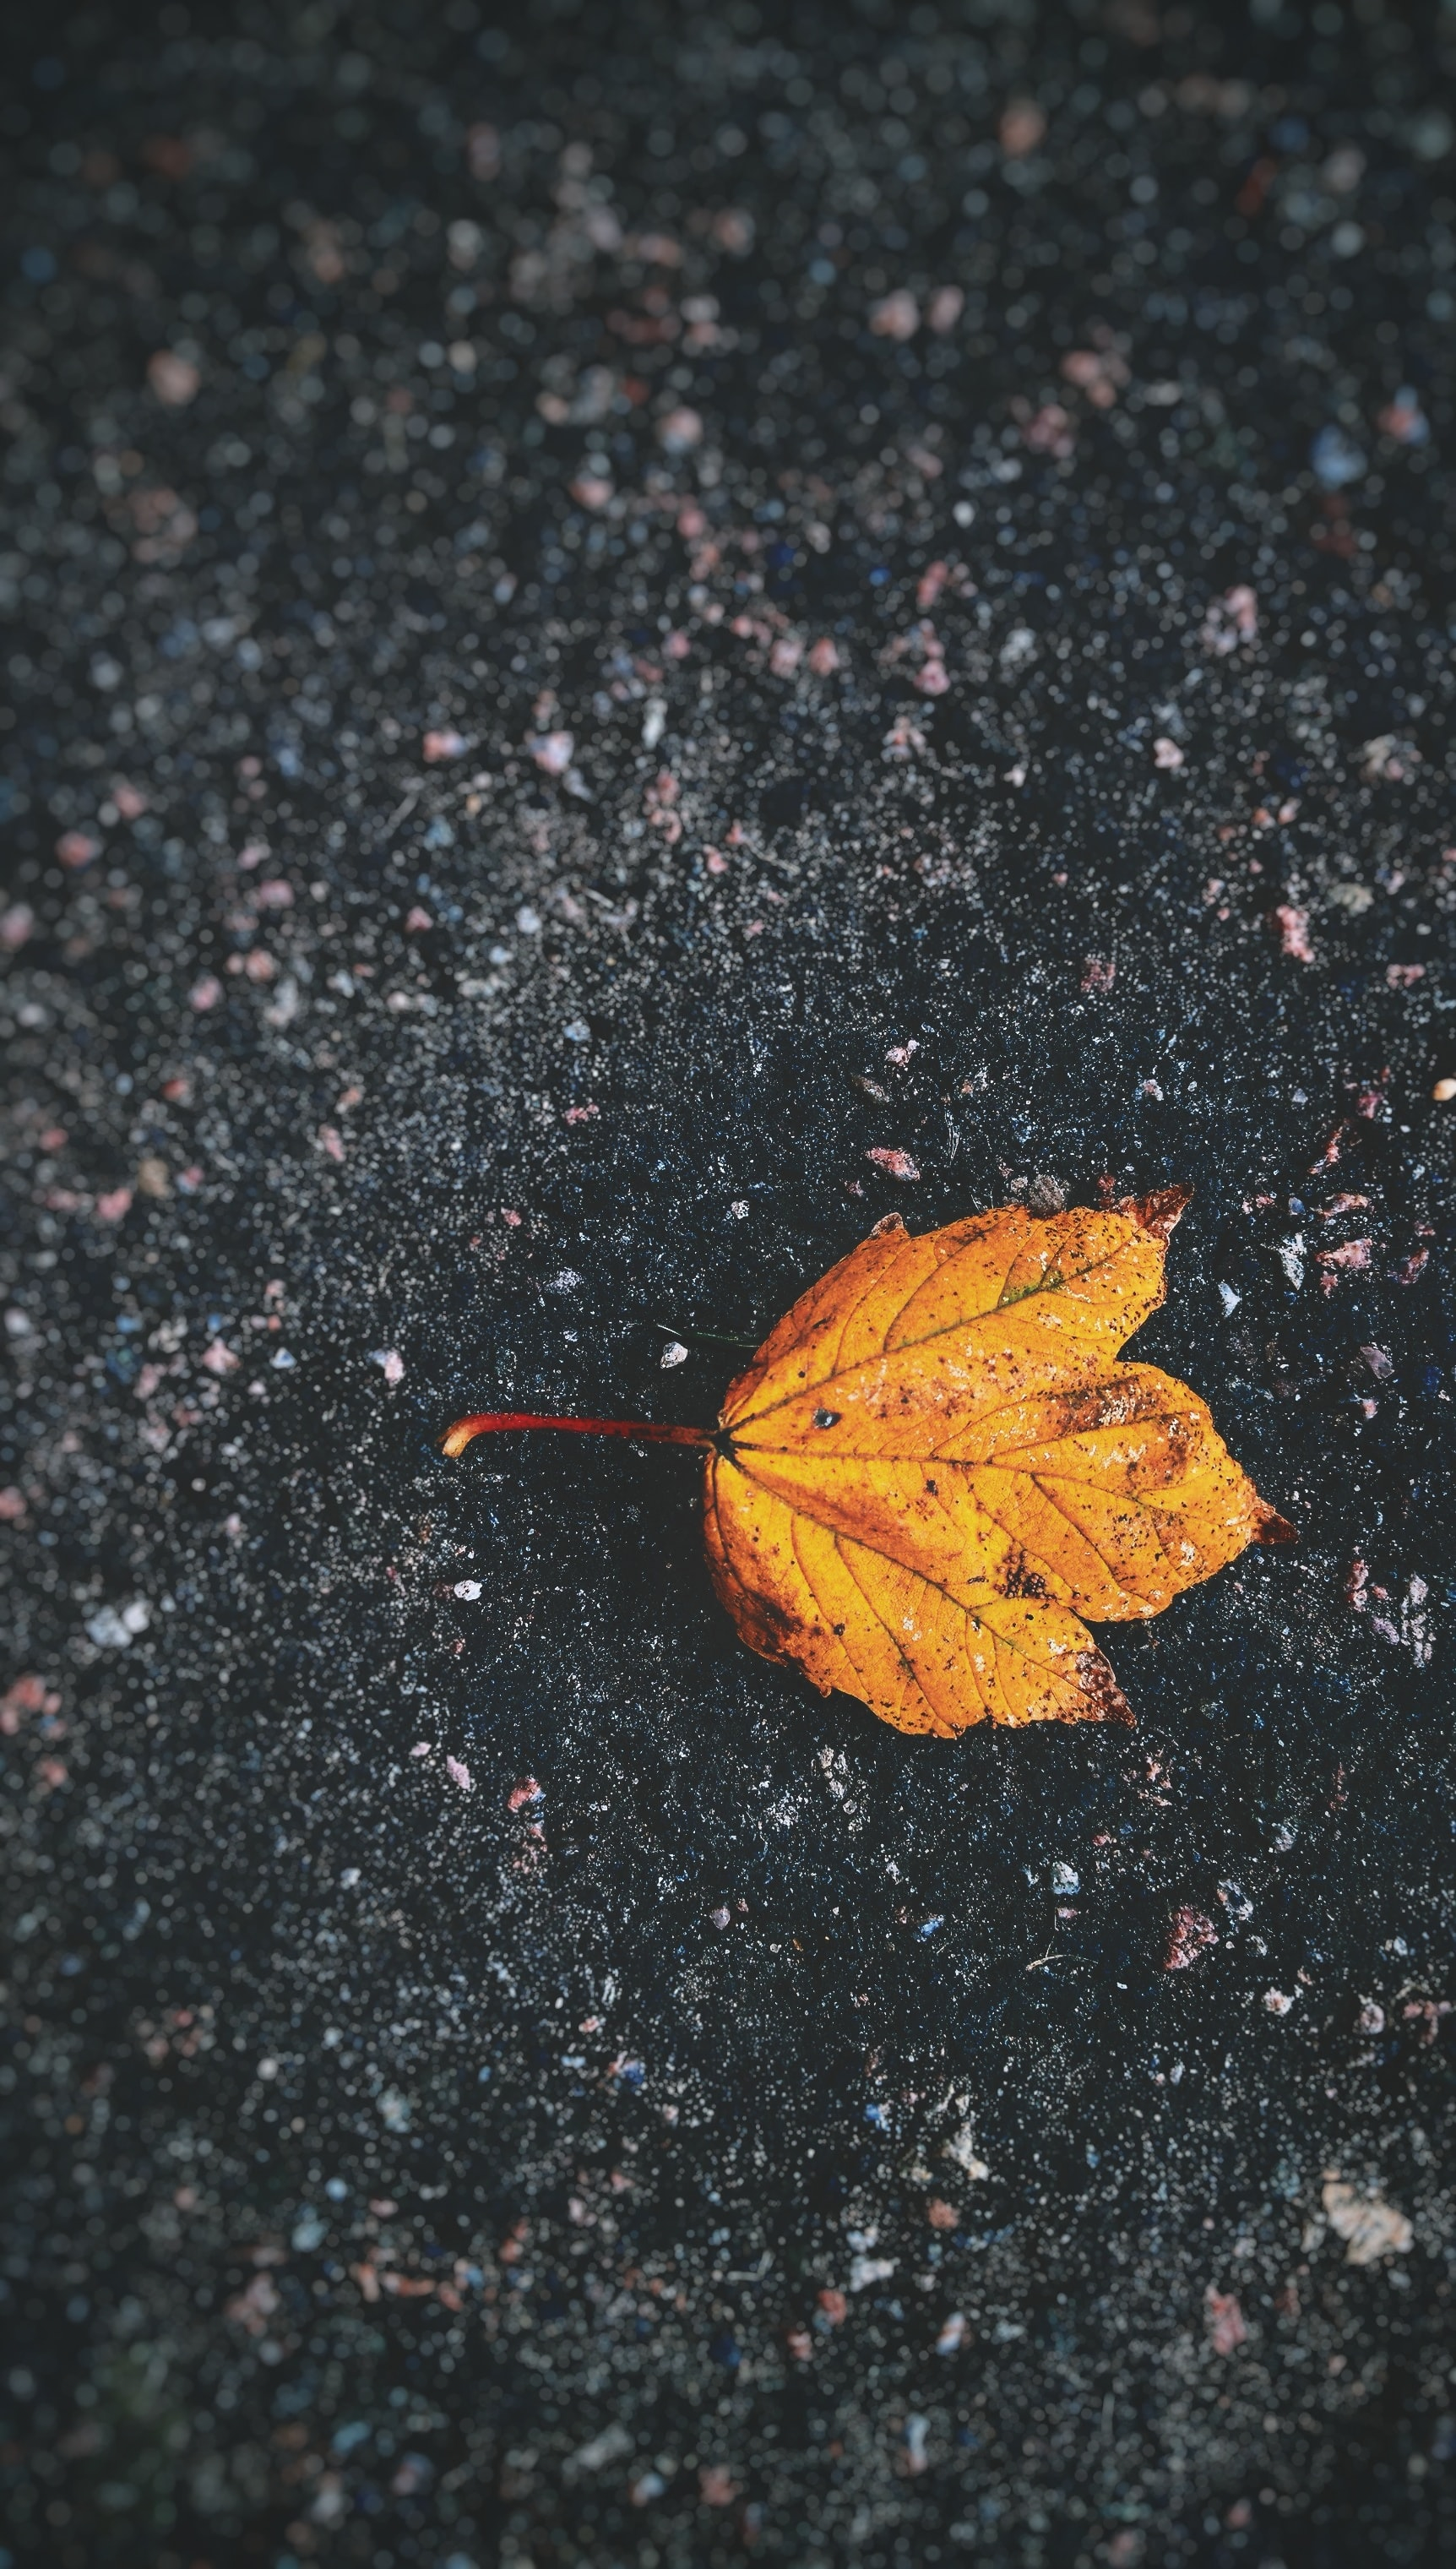 A yellow leaf on the ground.